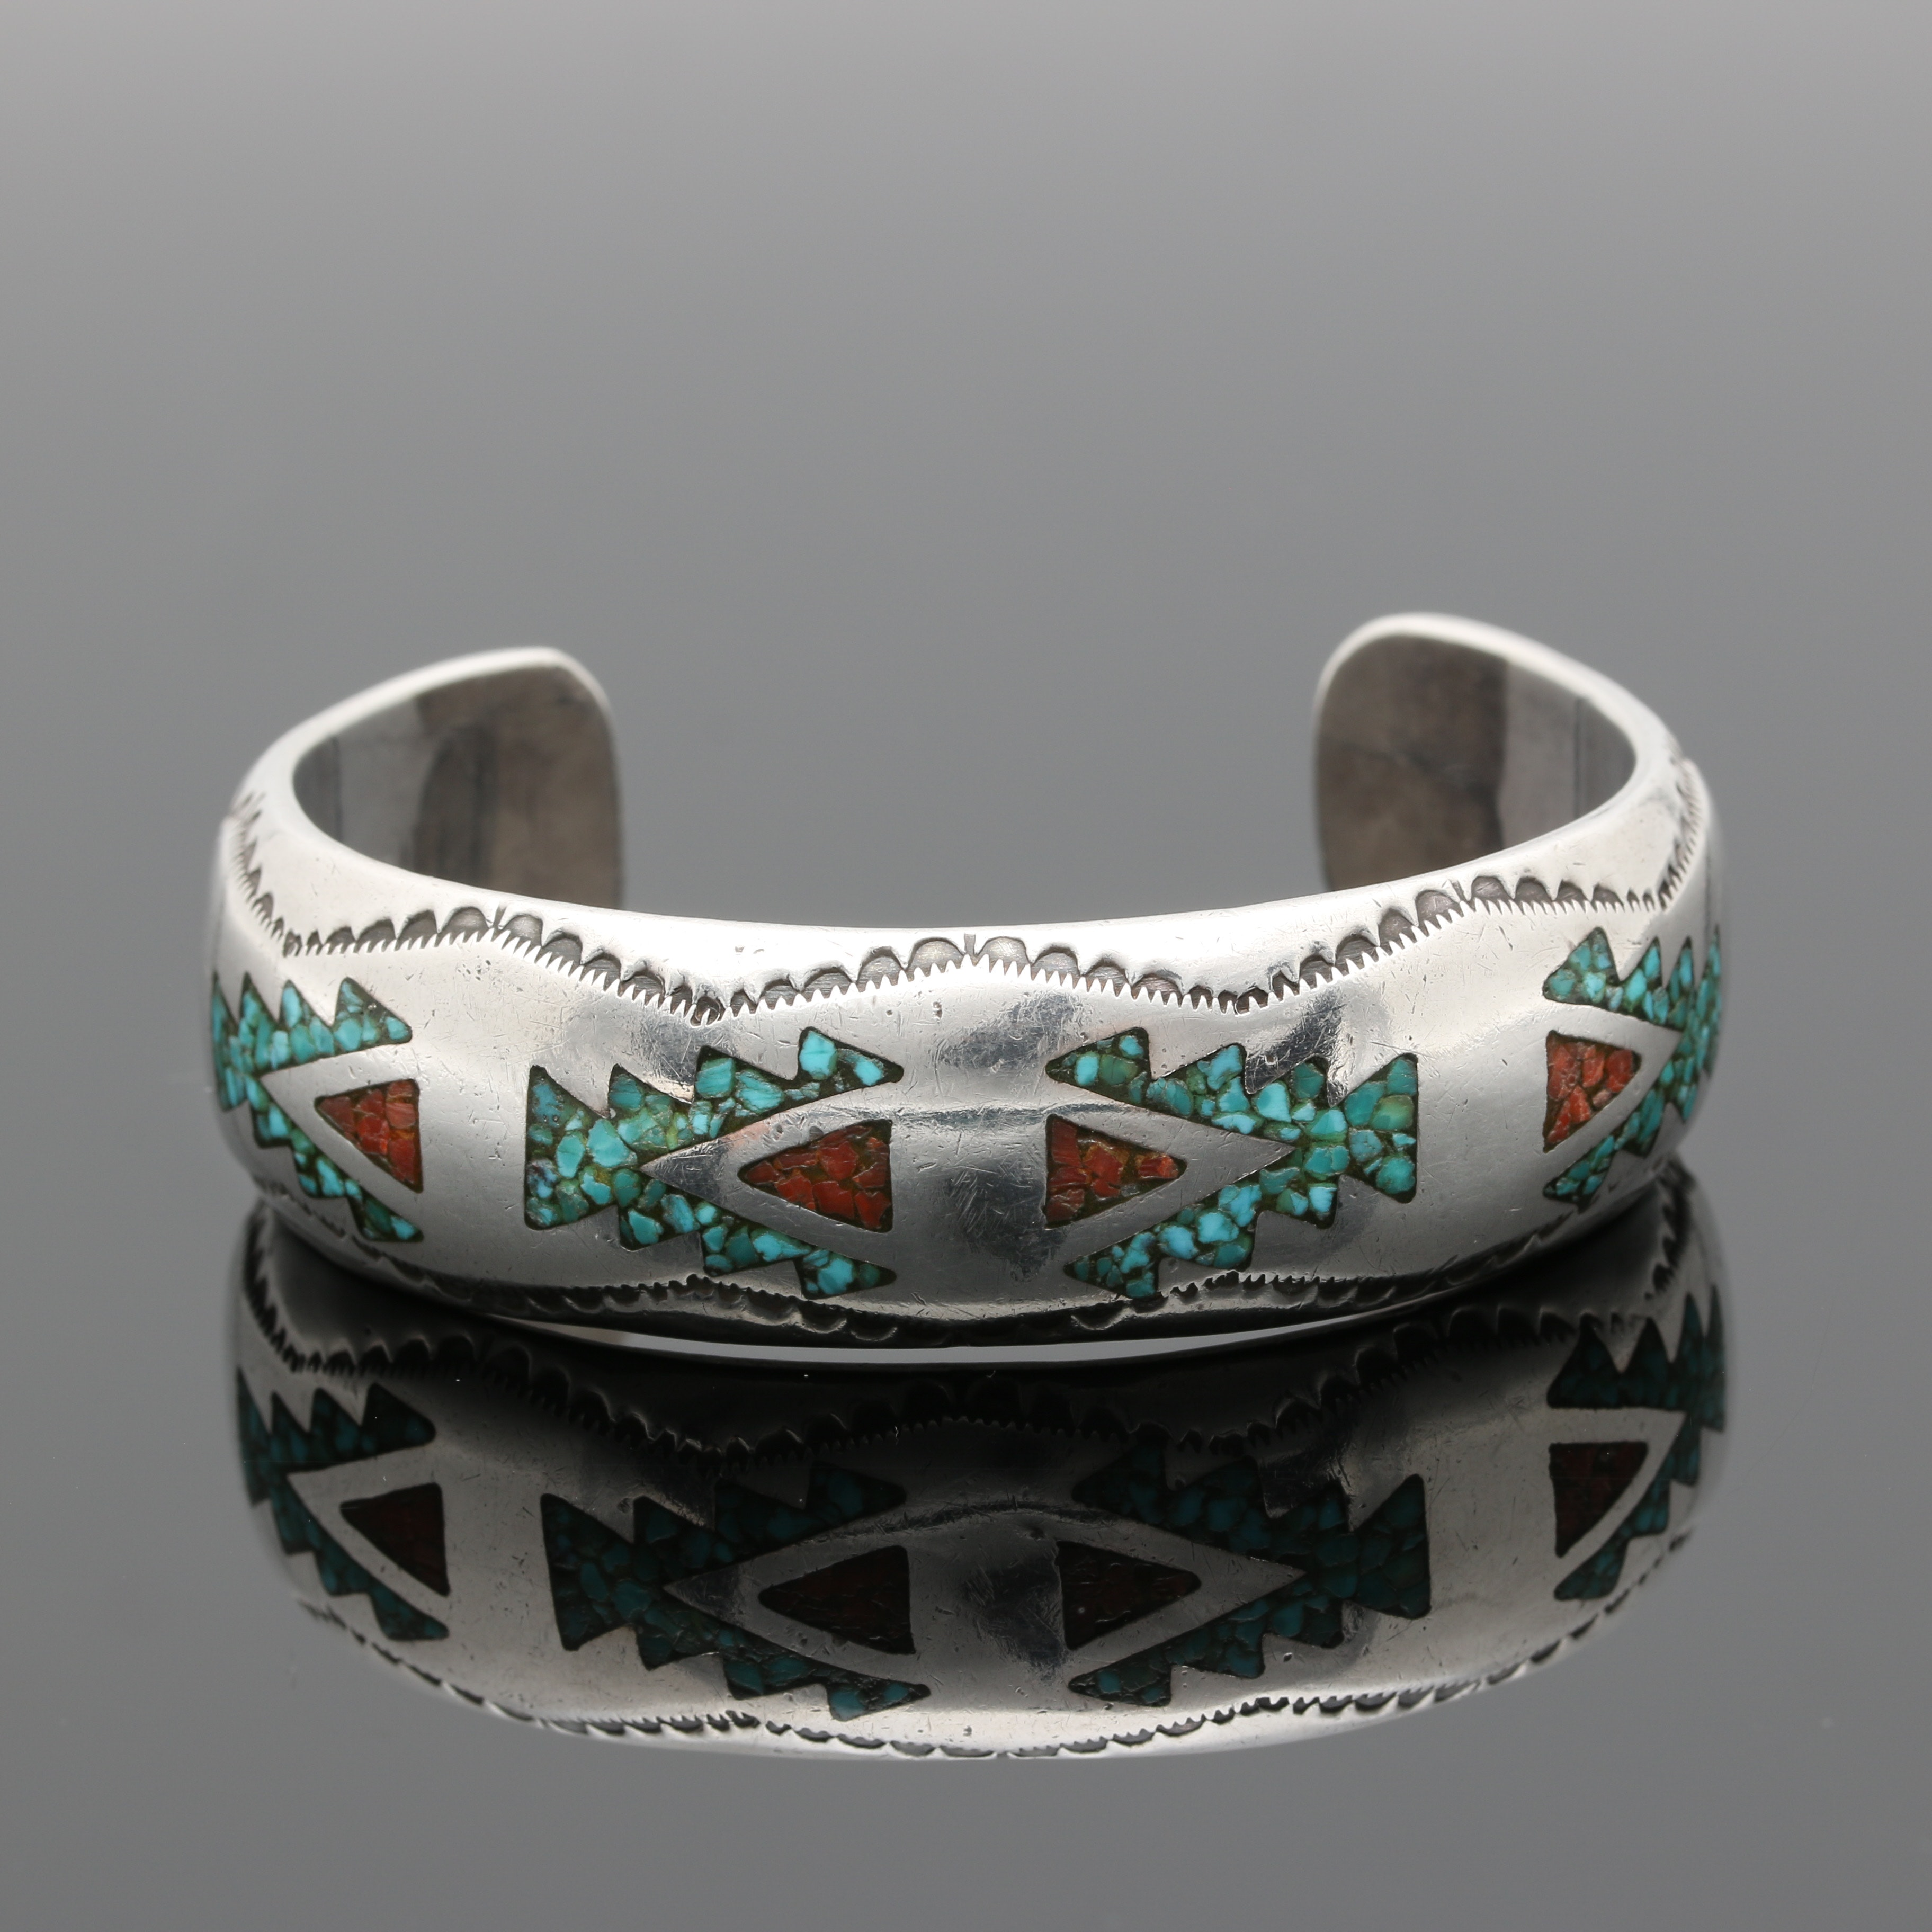 Joe Corbet Navajo Diné Sterling Silver Turquoise and Coral Inlay Cuff Bracelet